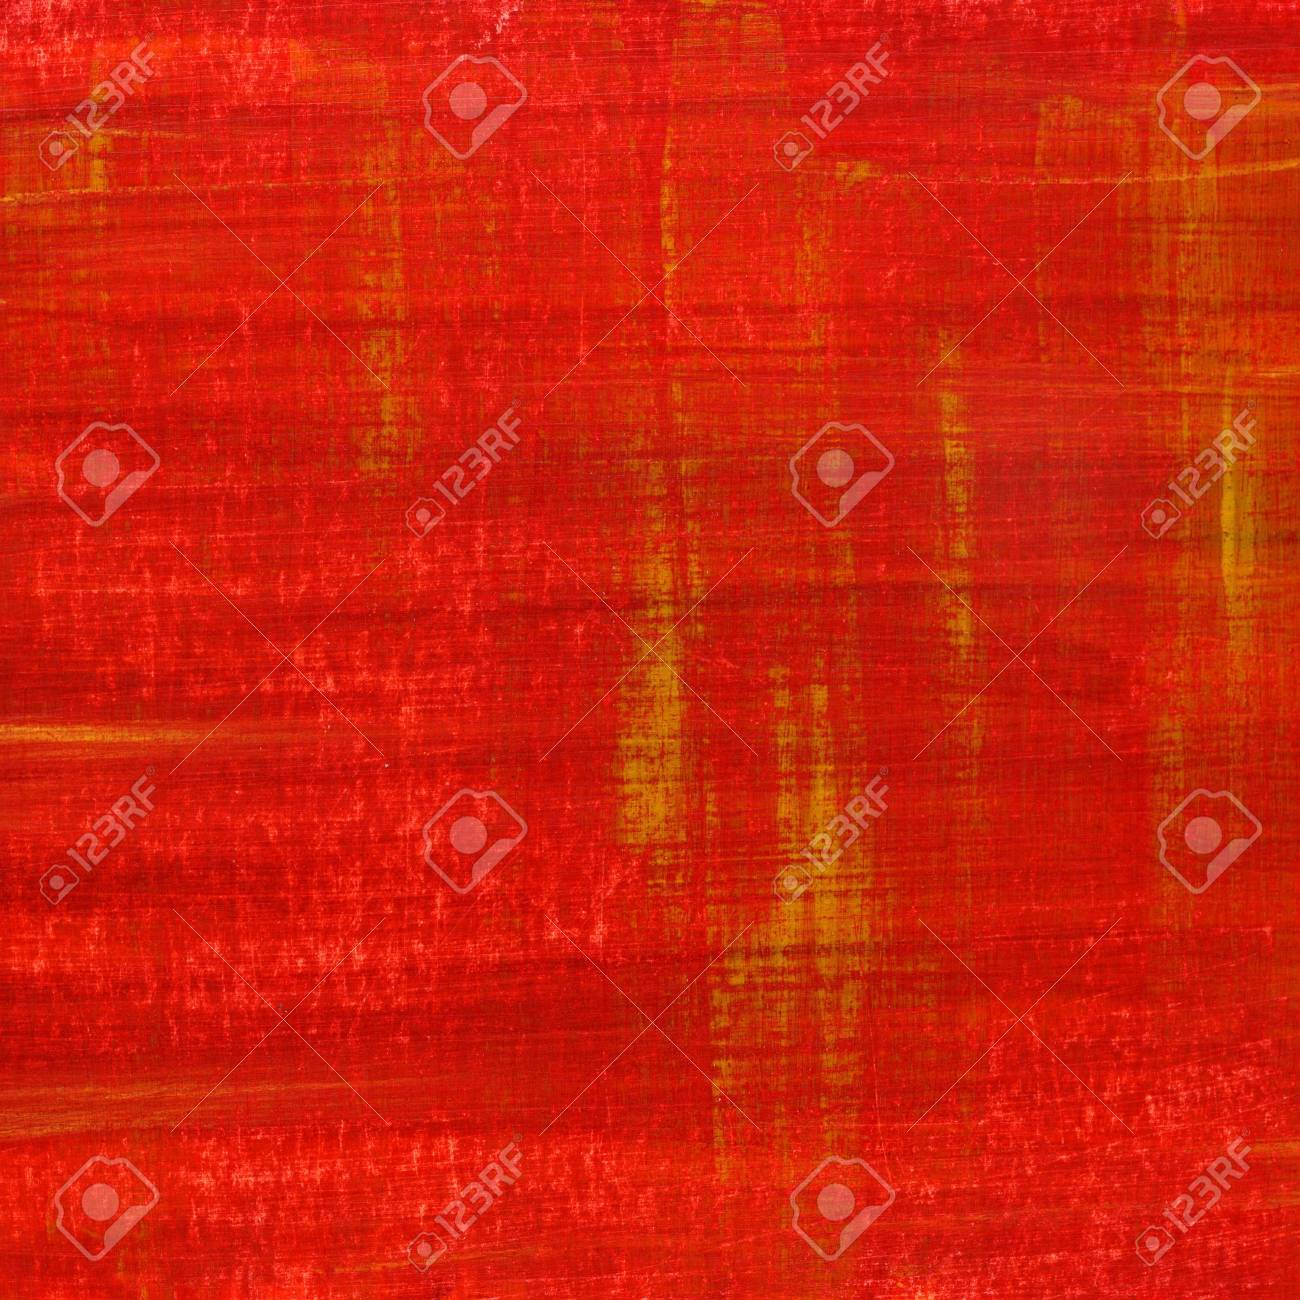 Red Hand Painted Watercolor Abstract Witch Scratch Texture Self Made Stock Photo